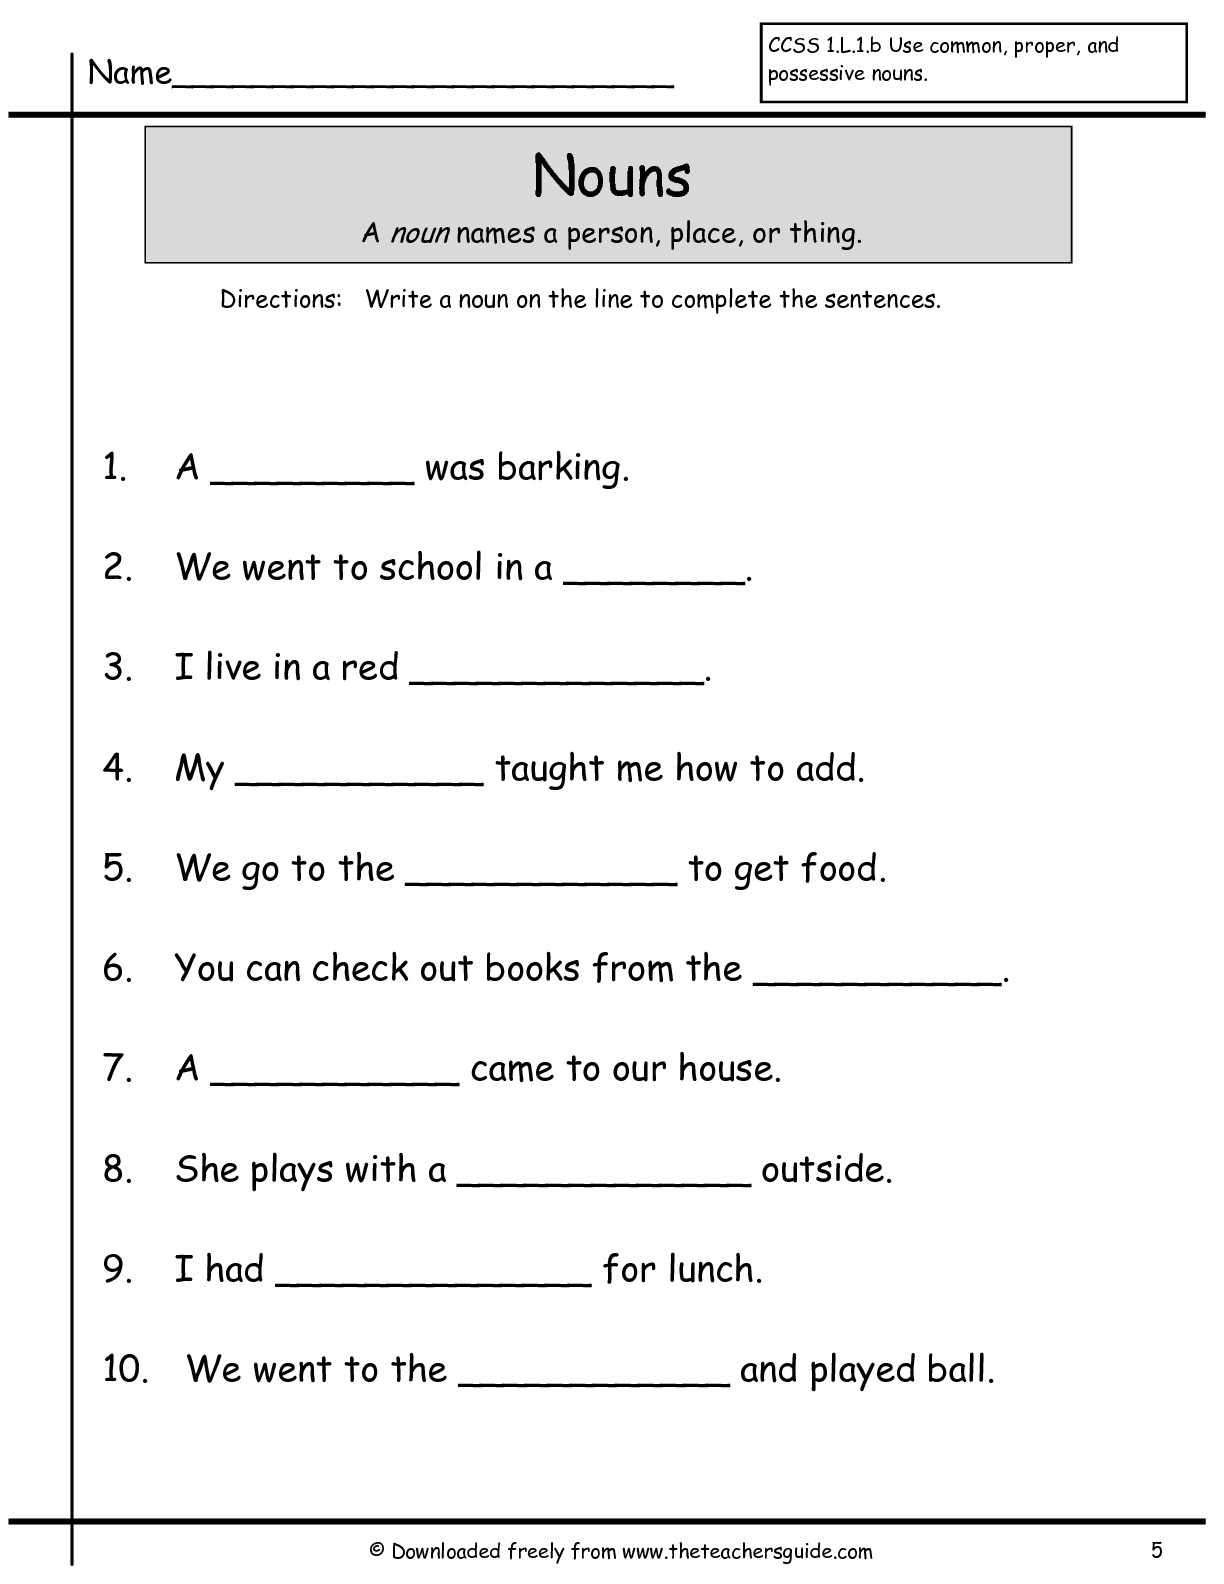 Reading Comprehension Worksheets Free Printable 1st Grade Deployday – Free Printable Reading Worksheets